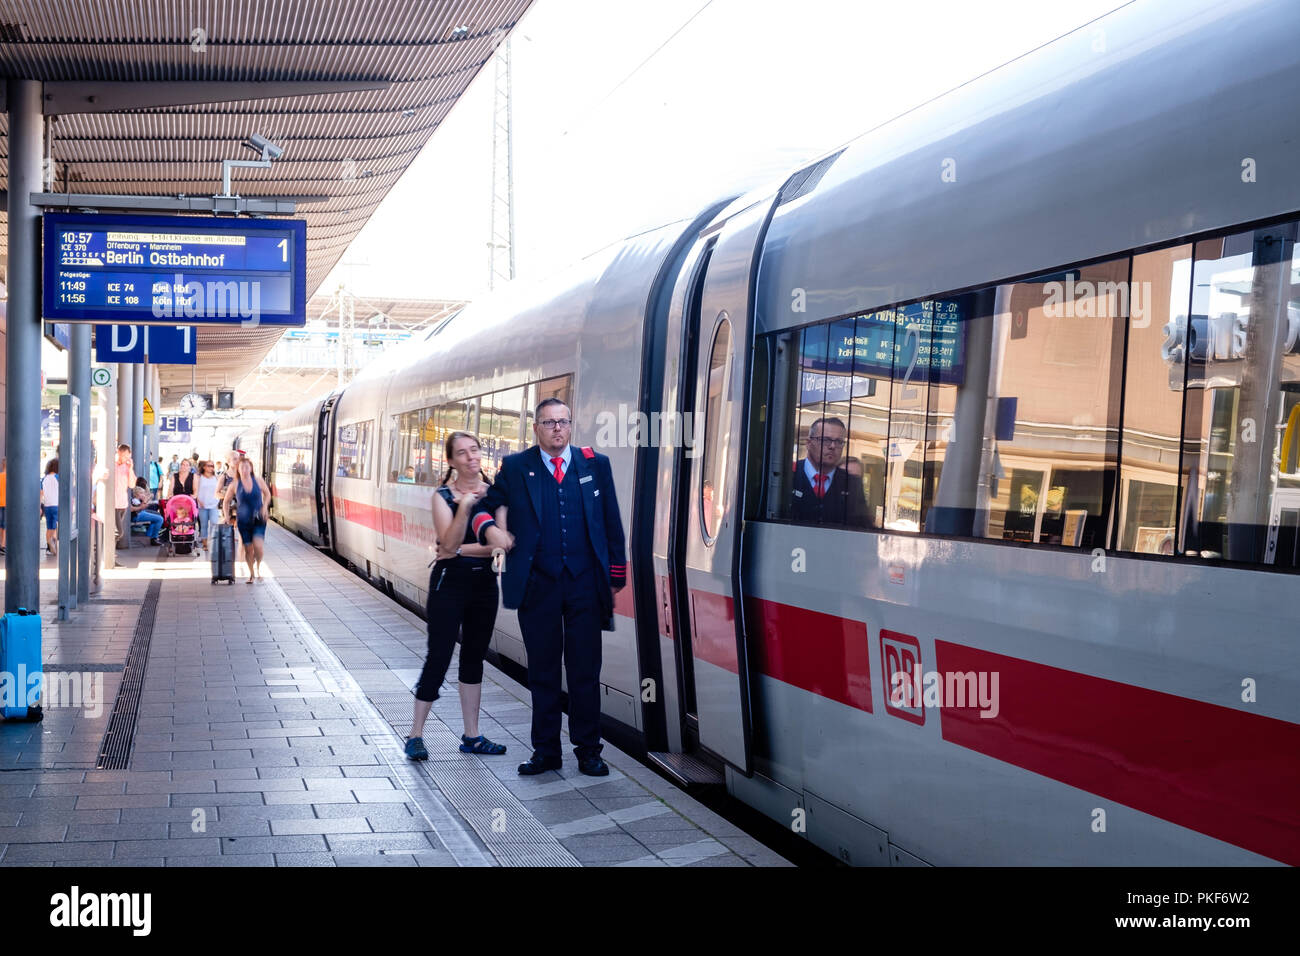 Freiburg, Baden-Wurttemberg, Germany - JULY 30 2018 : Railway guard on the platform next to open door of ICE high speed Intercity-Express train. - Stock Image